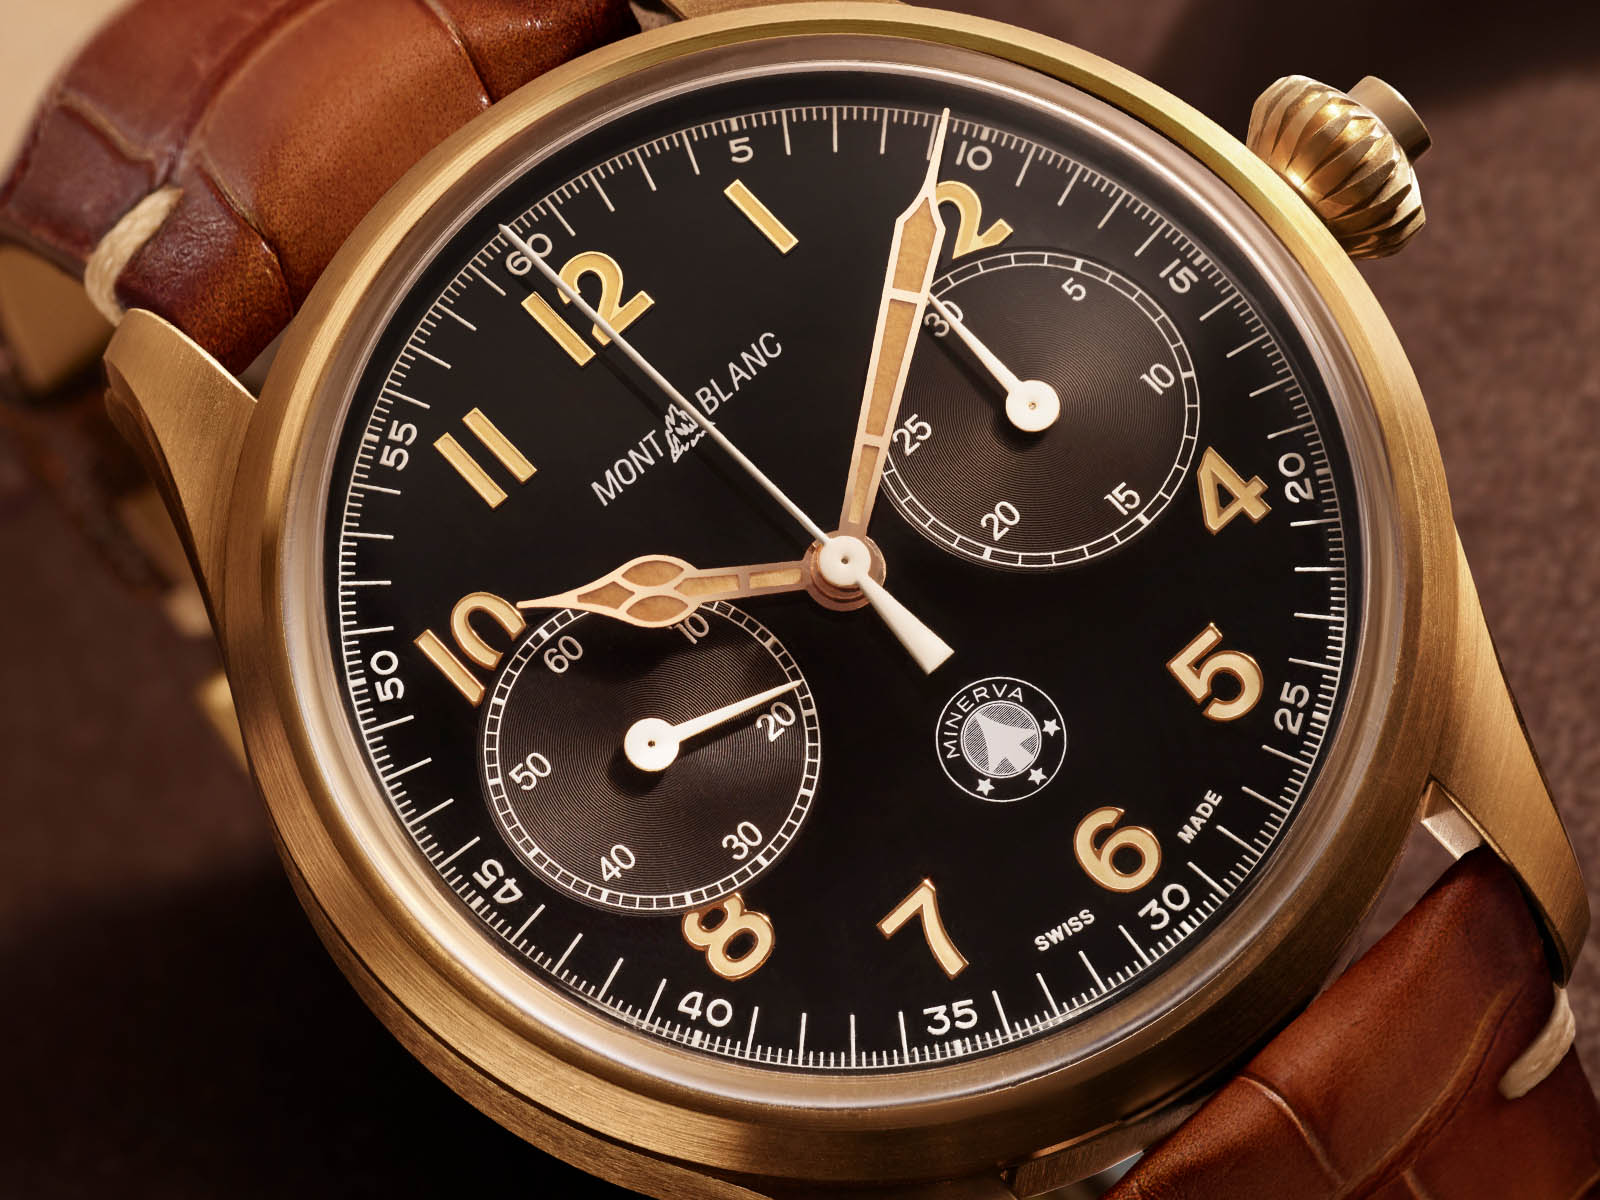 128506-montblanc-1858-monopusher-chronograph-origins-limited-edition-100-8.jpg